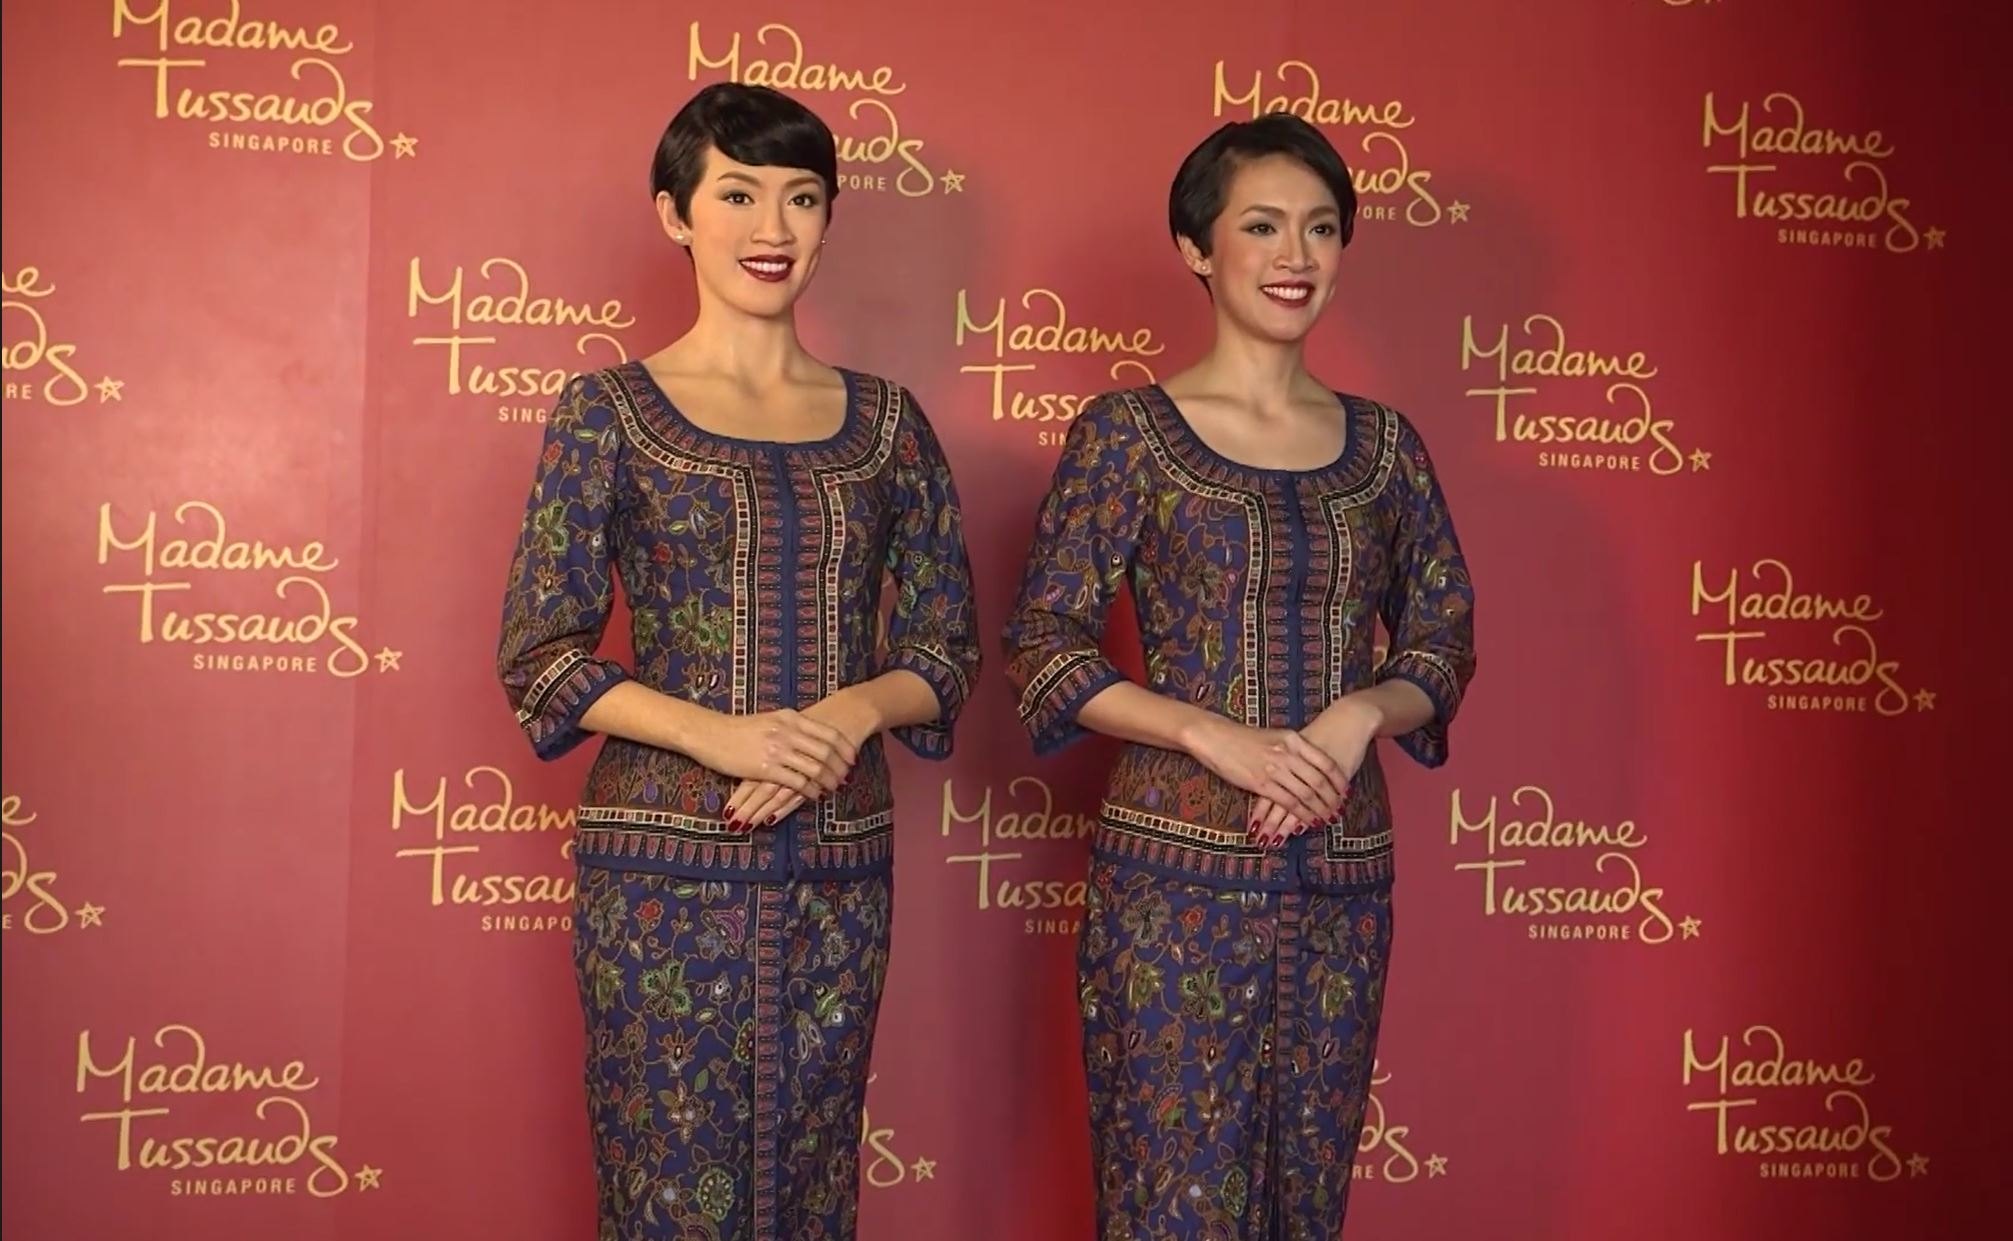 Making of new Singapore Girl waxworks by Madame Tussauds